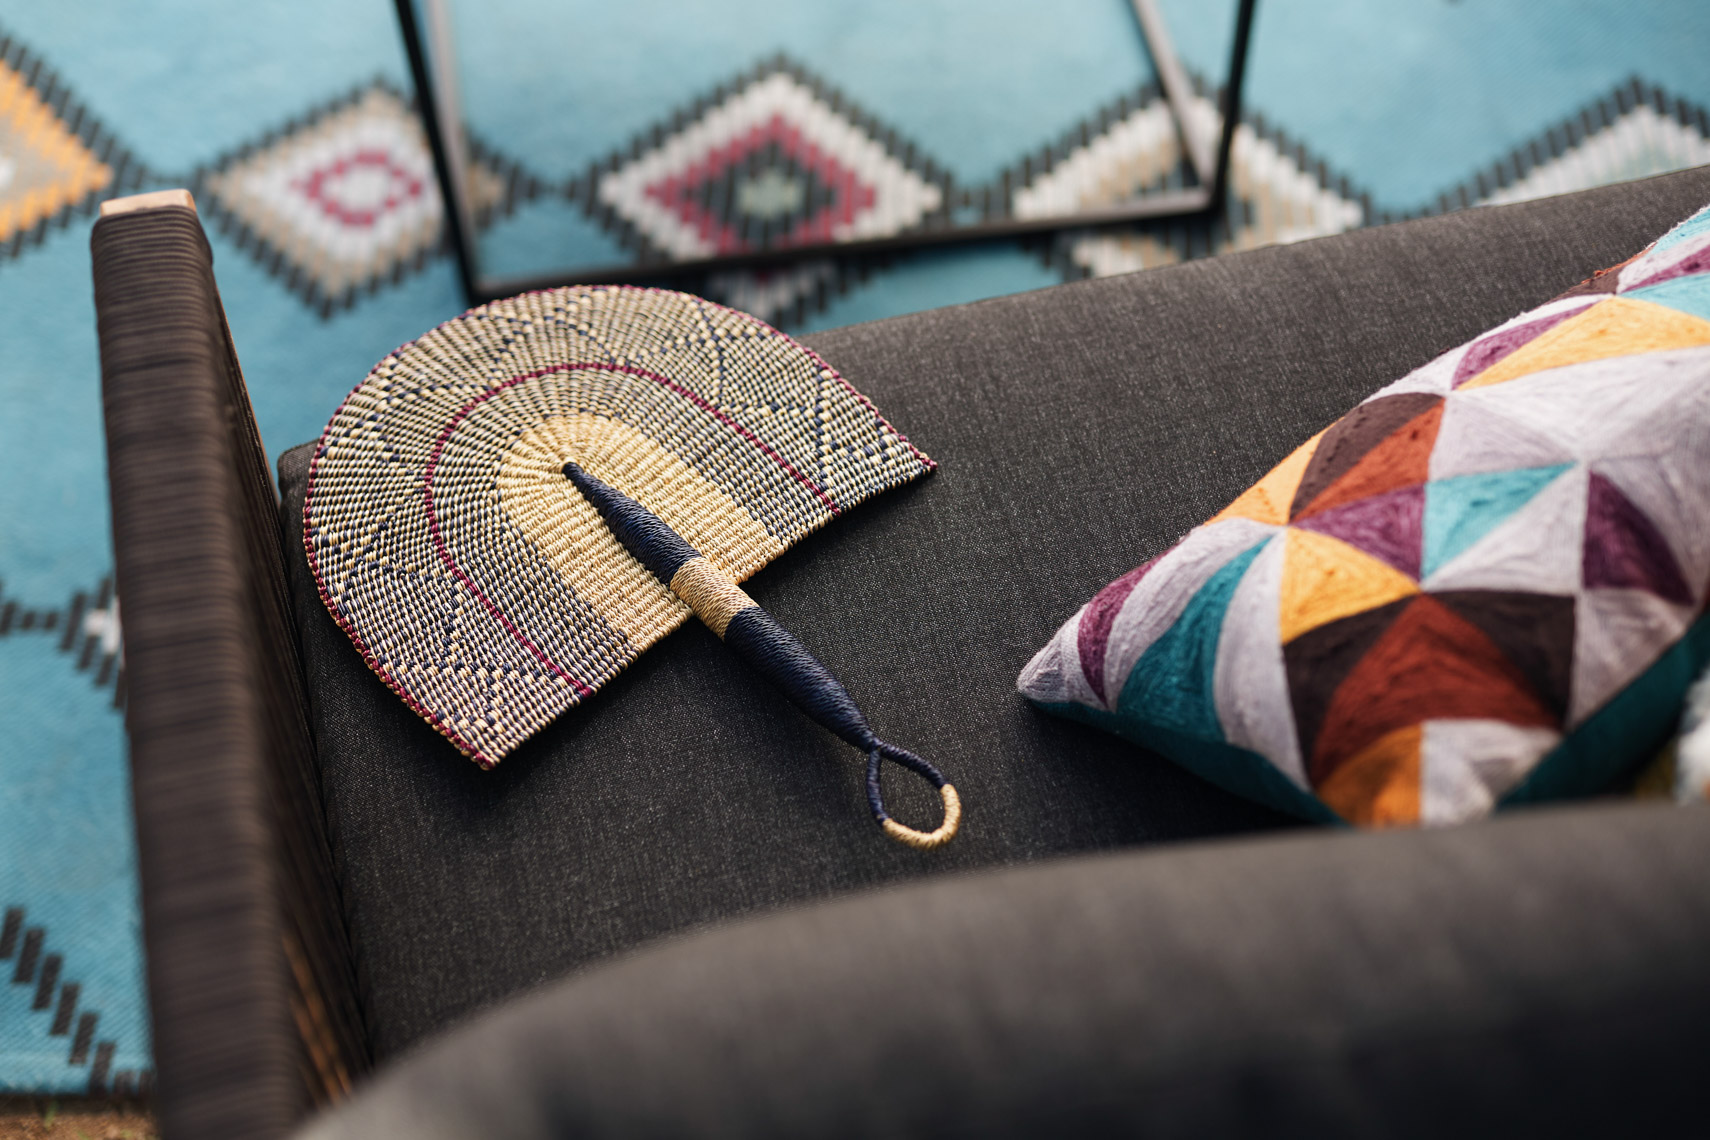 Detail of fan on dark couch with colorful pillow outside San Francisco product photographer